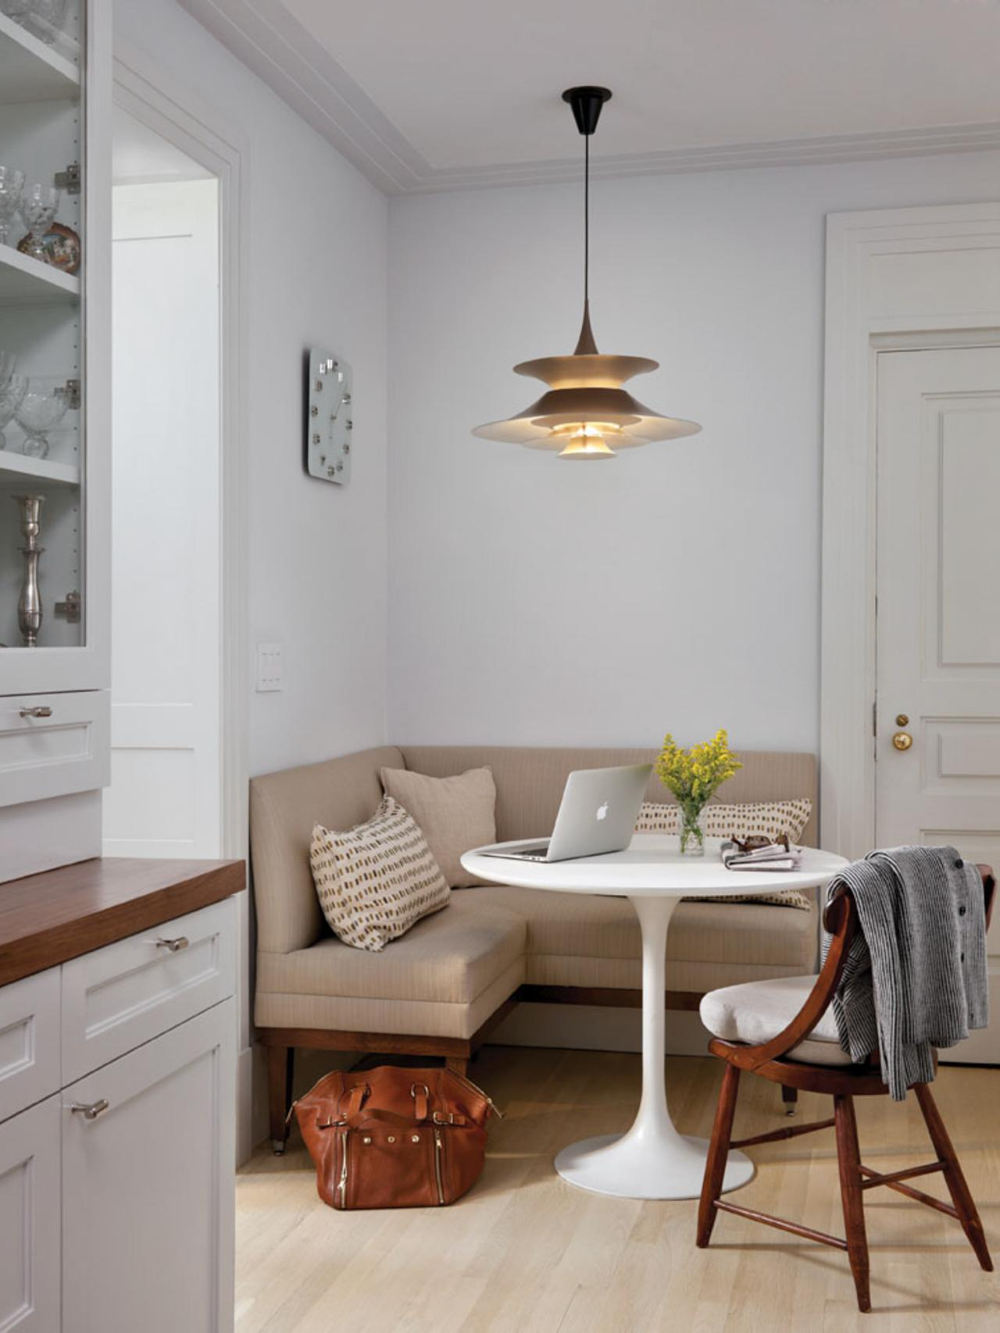 12 Ways to Make a Banquette Work in Your Kitchen